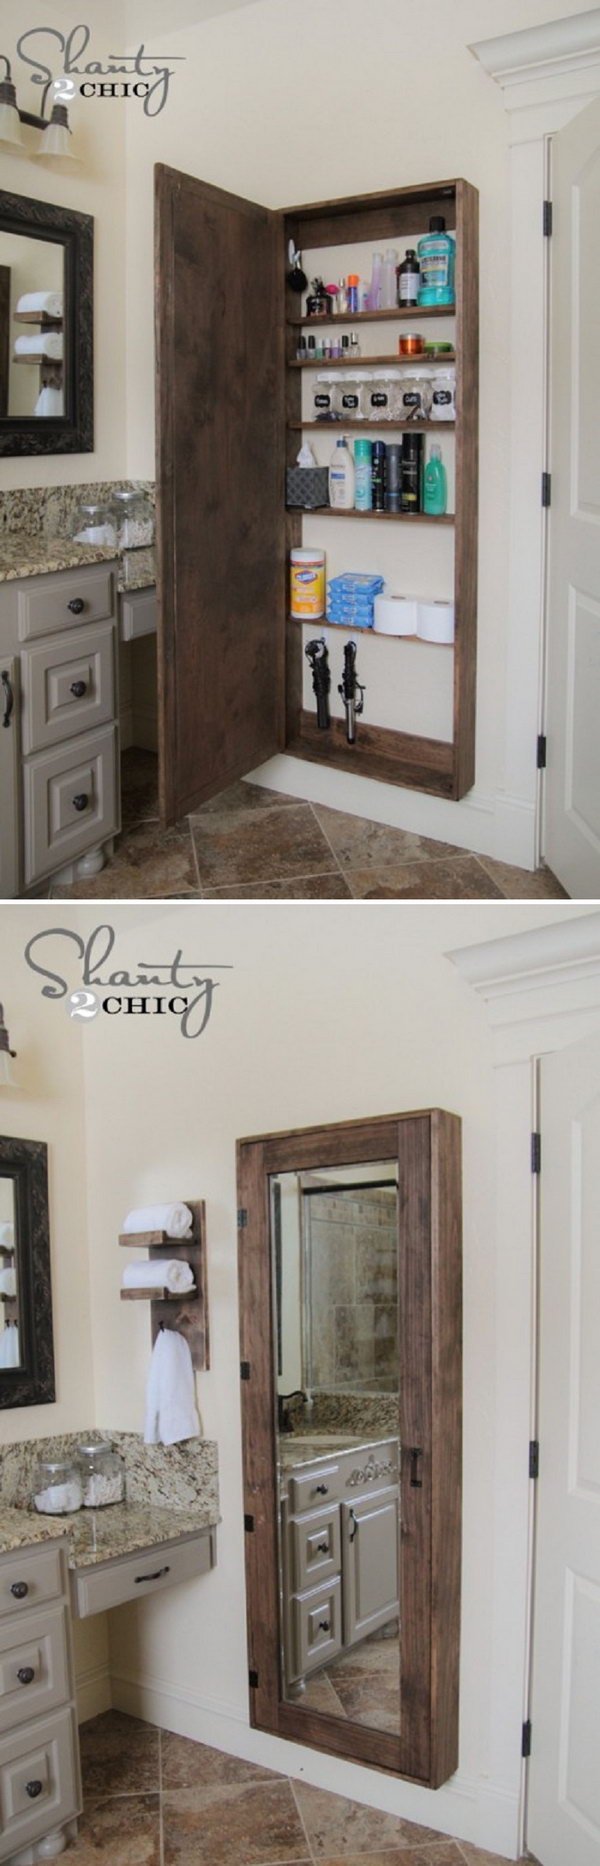 20 clever bathroom storage ideas hative for Clever bathroom ideas